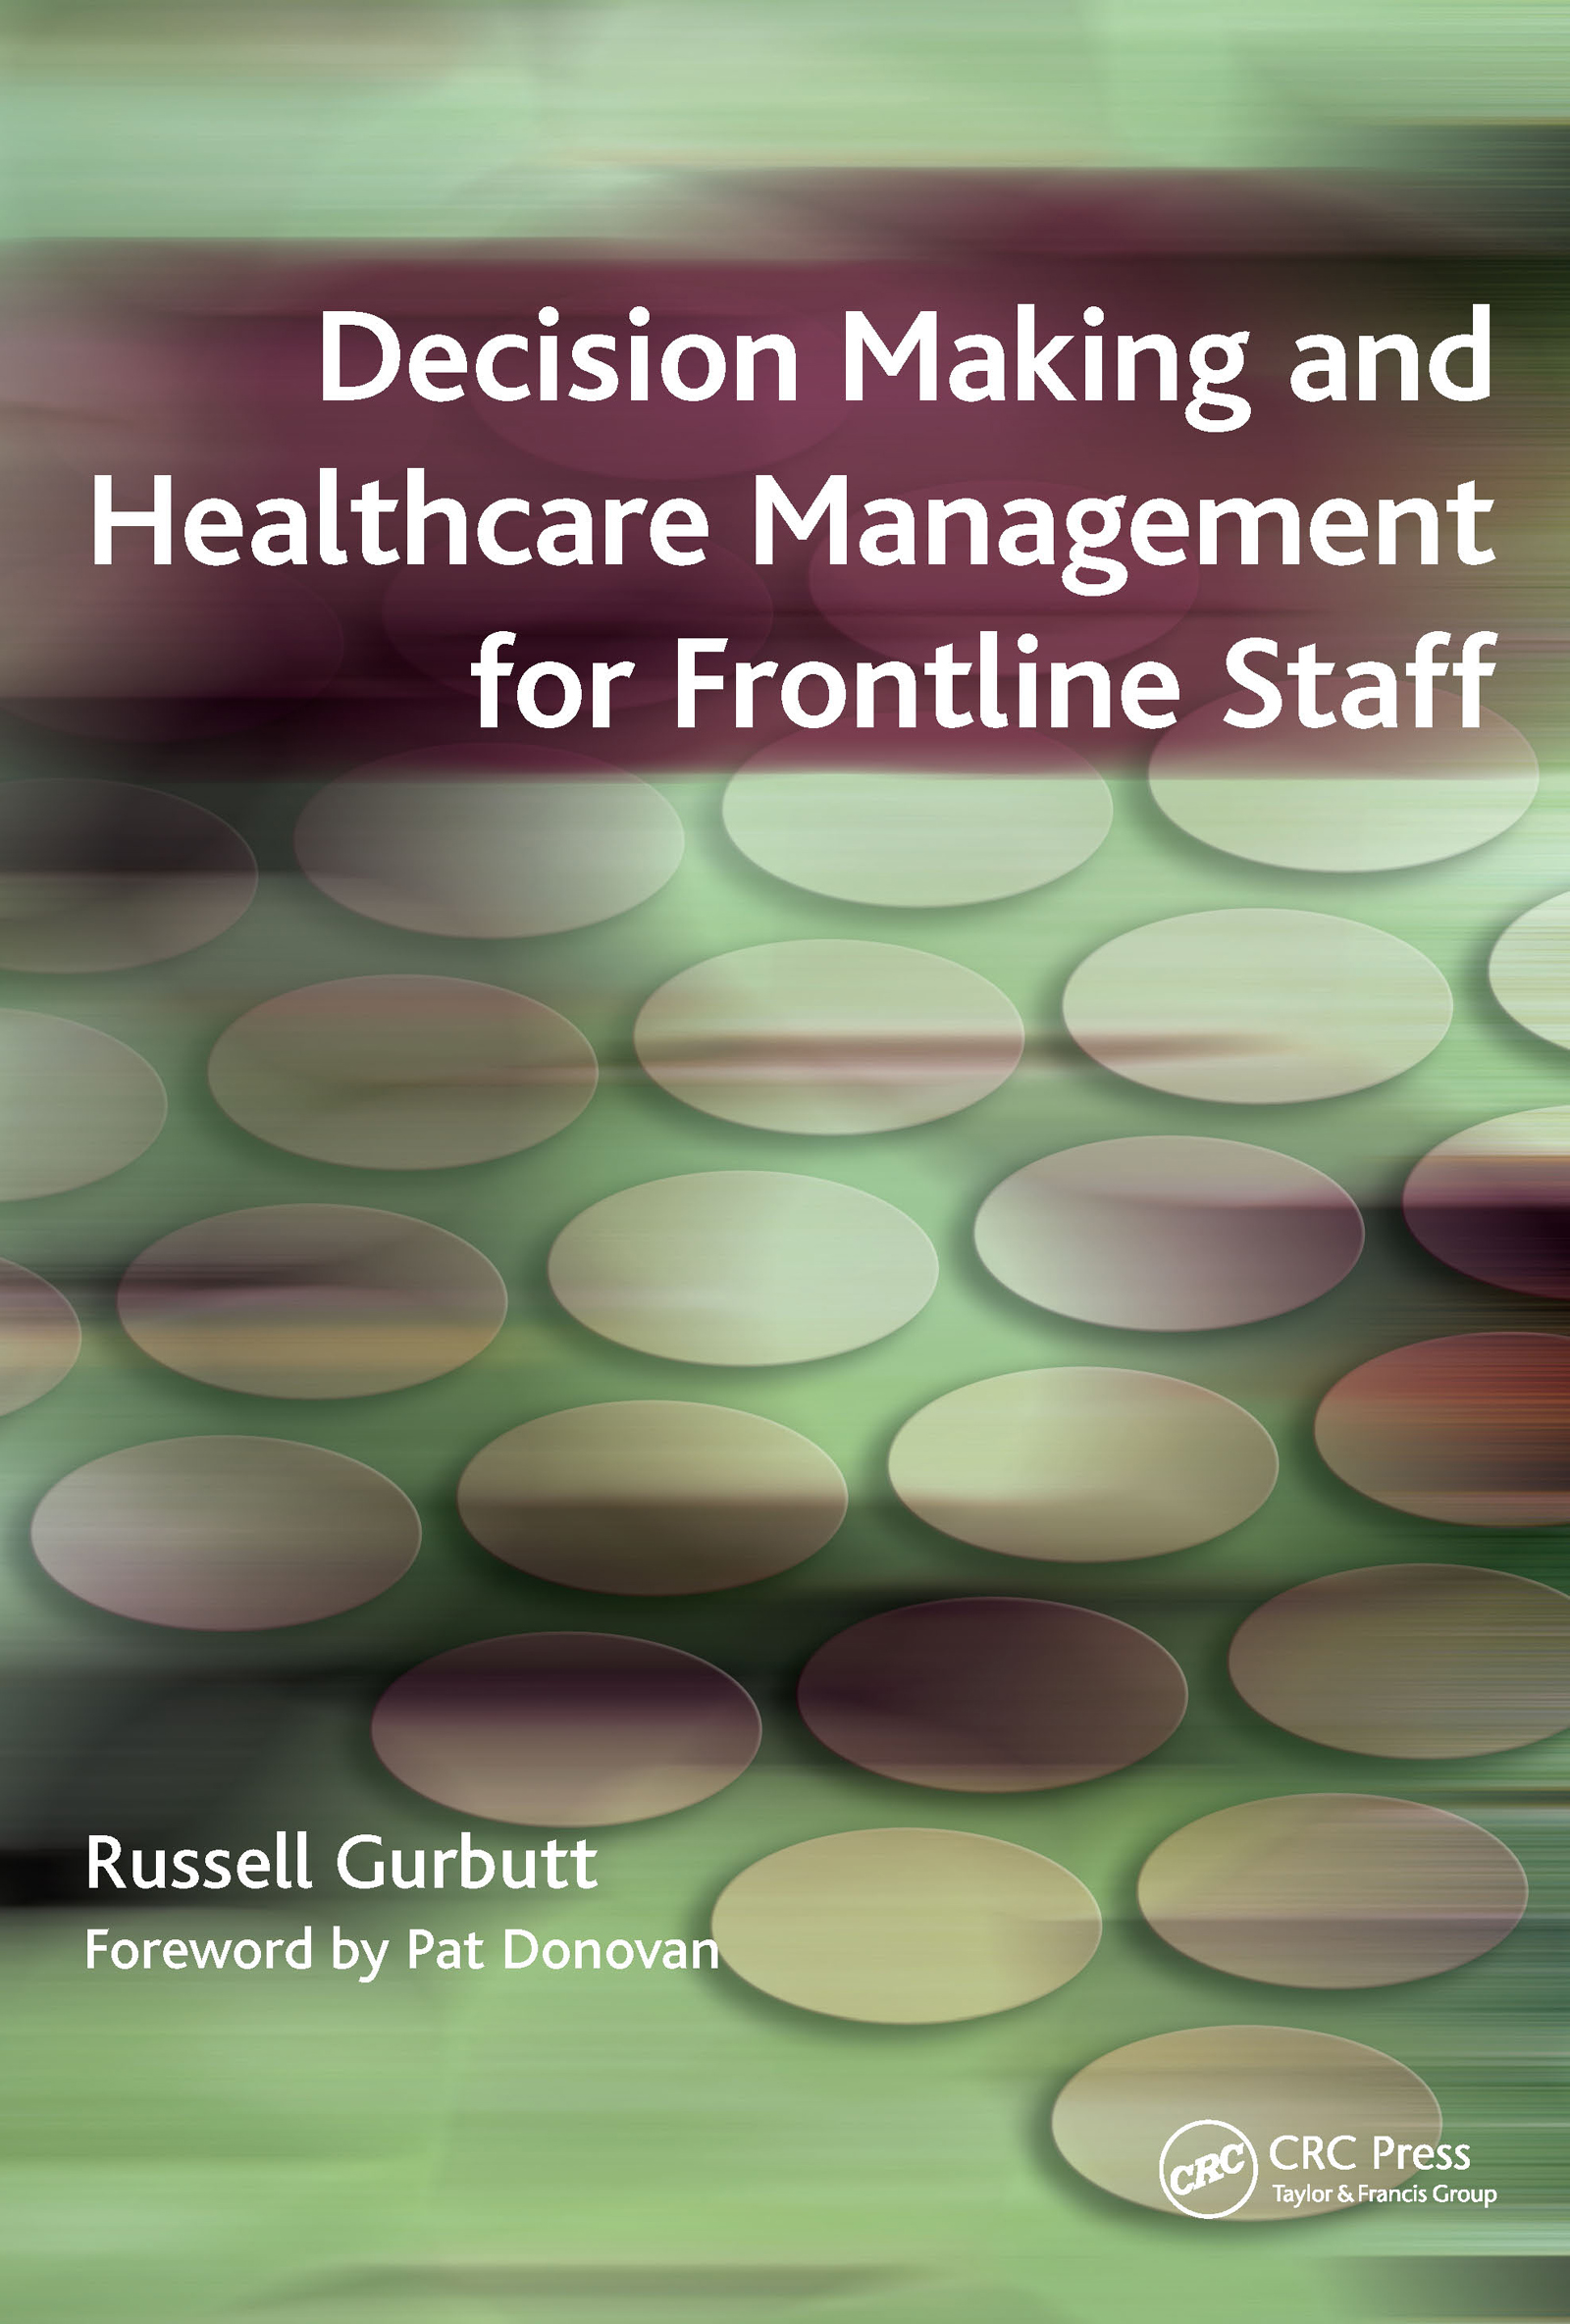 Decision Making and Healthcare Management for Frontline Staff